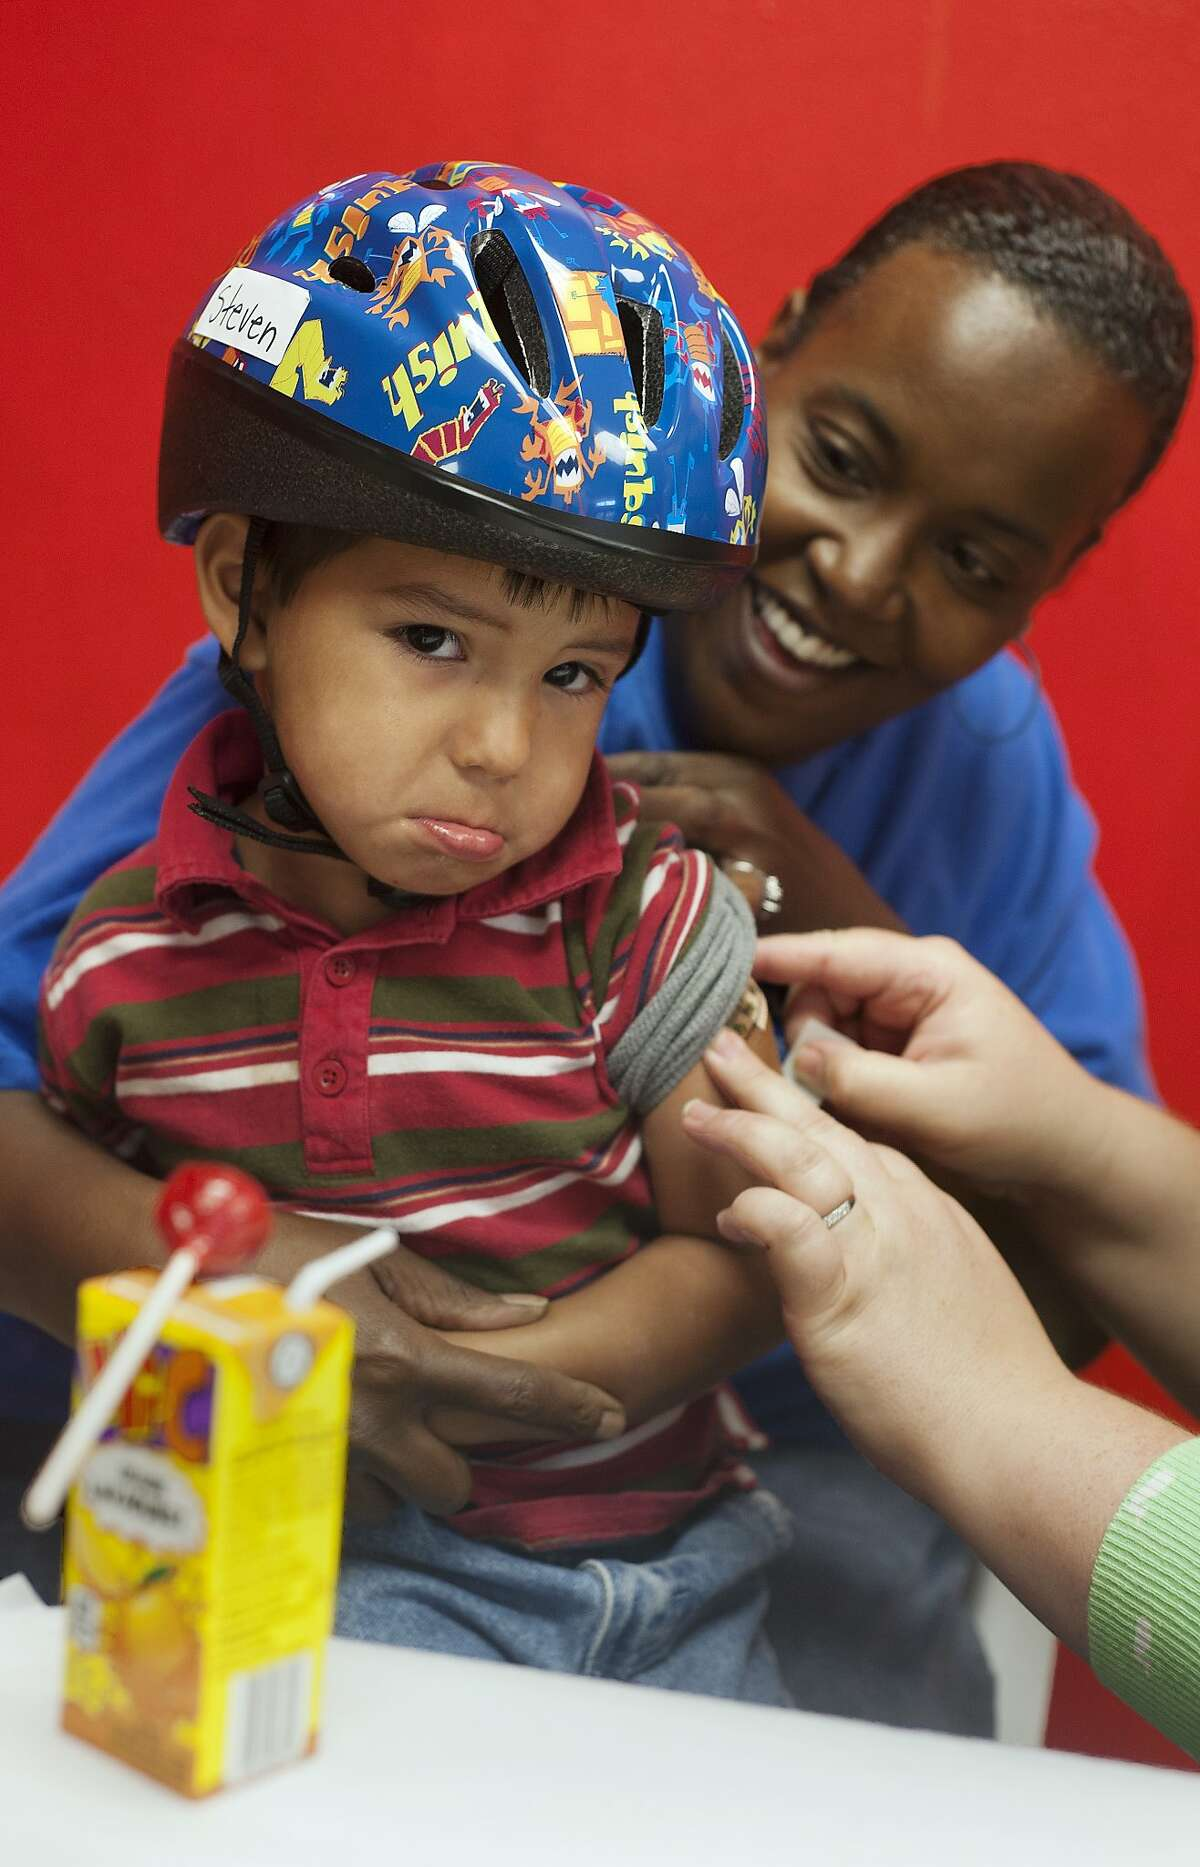 Should have put it on my arm instead of my head: Despite getting a lollipop, juice and a free bicycle helmet, 3-year-old preschooler Steven Barron can only pout after receiving a vaccination shot at Tyler Day Nursery in Tyler, Texas.